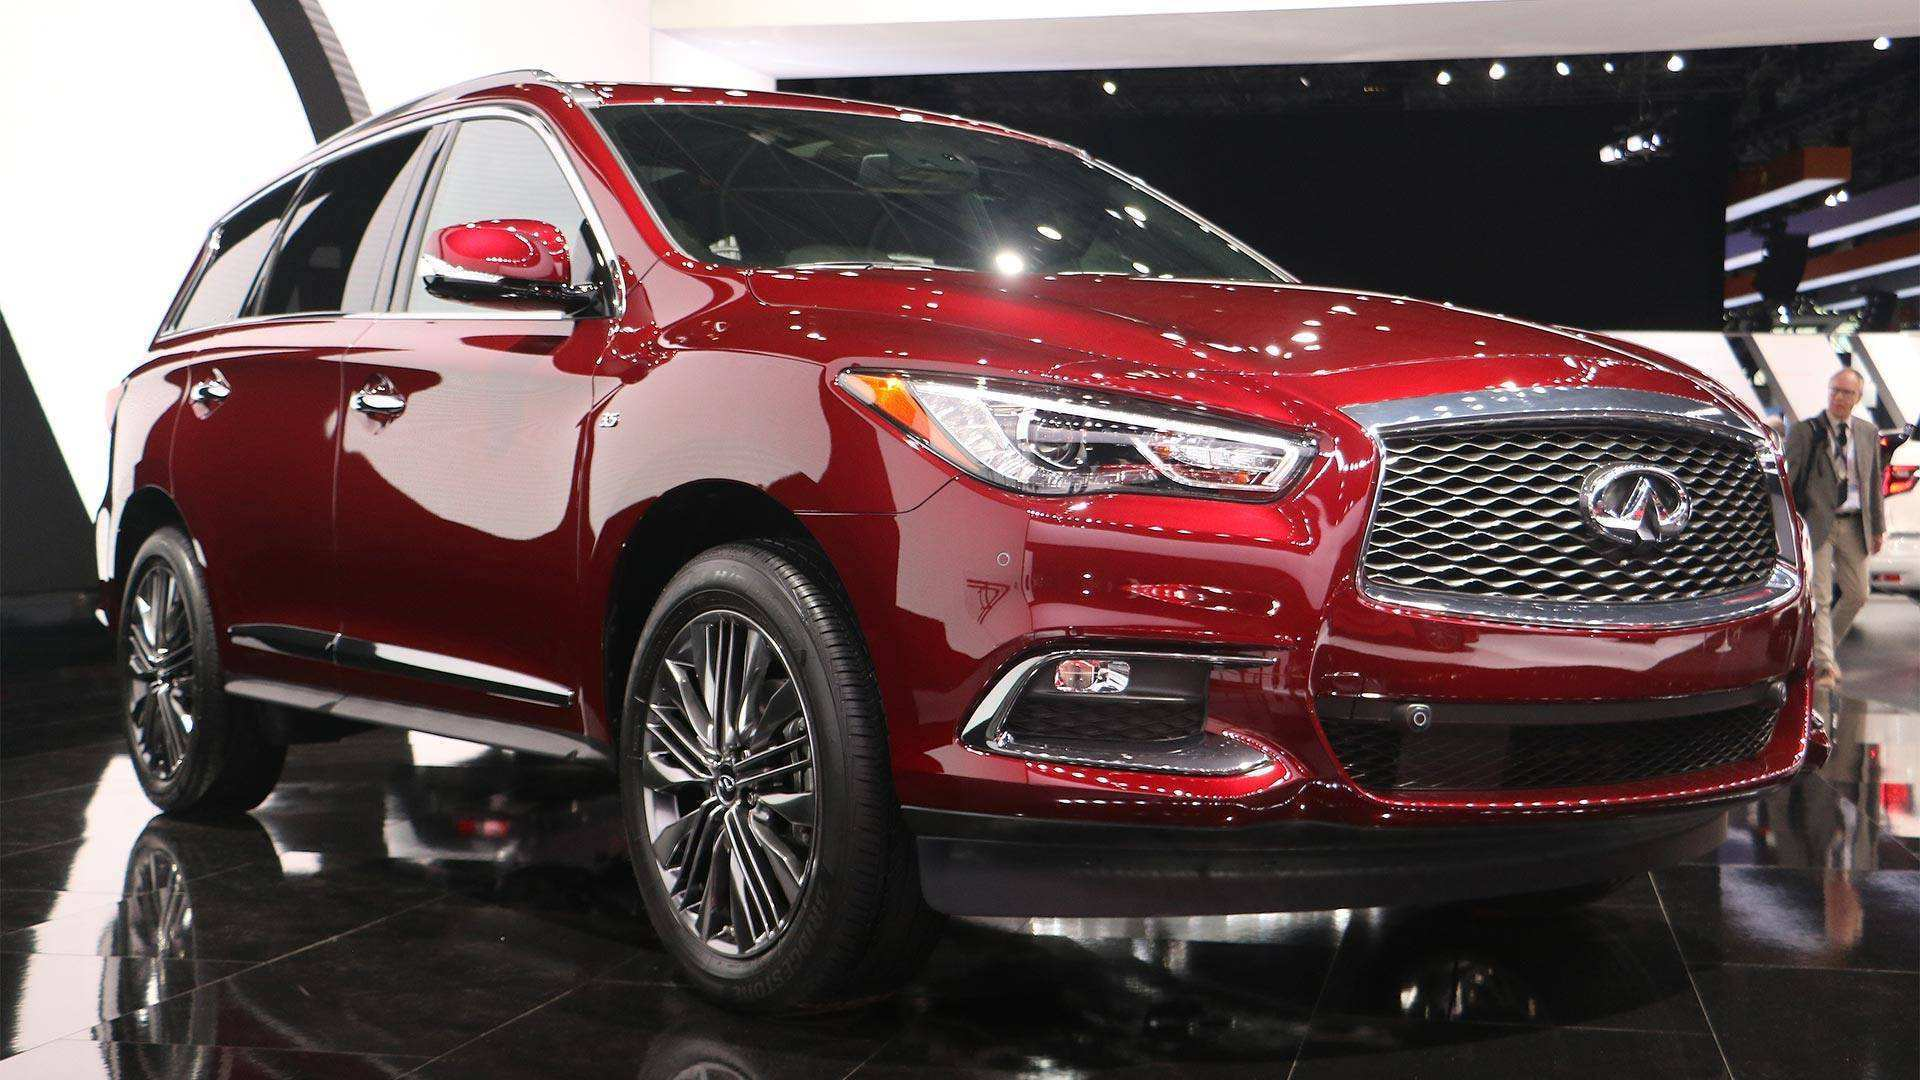 33 New 2019 Infiniti QX60 Hybrid Reviews